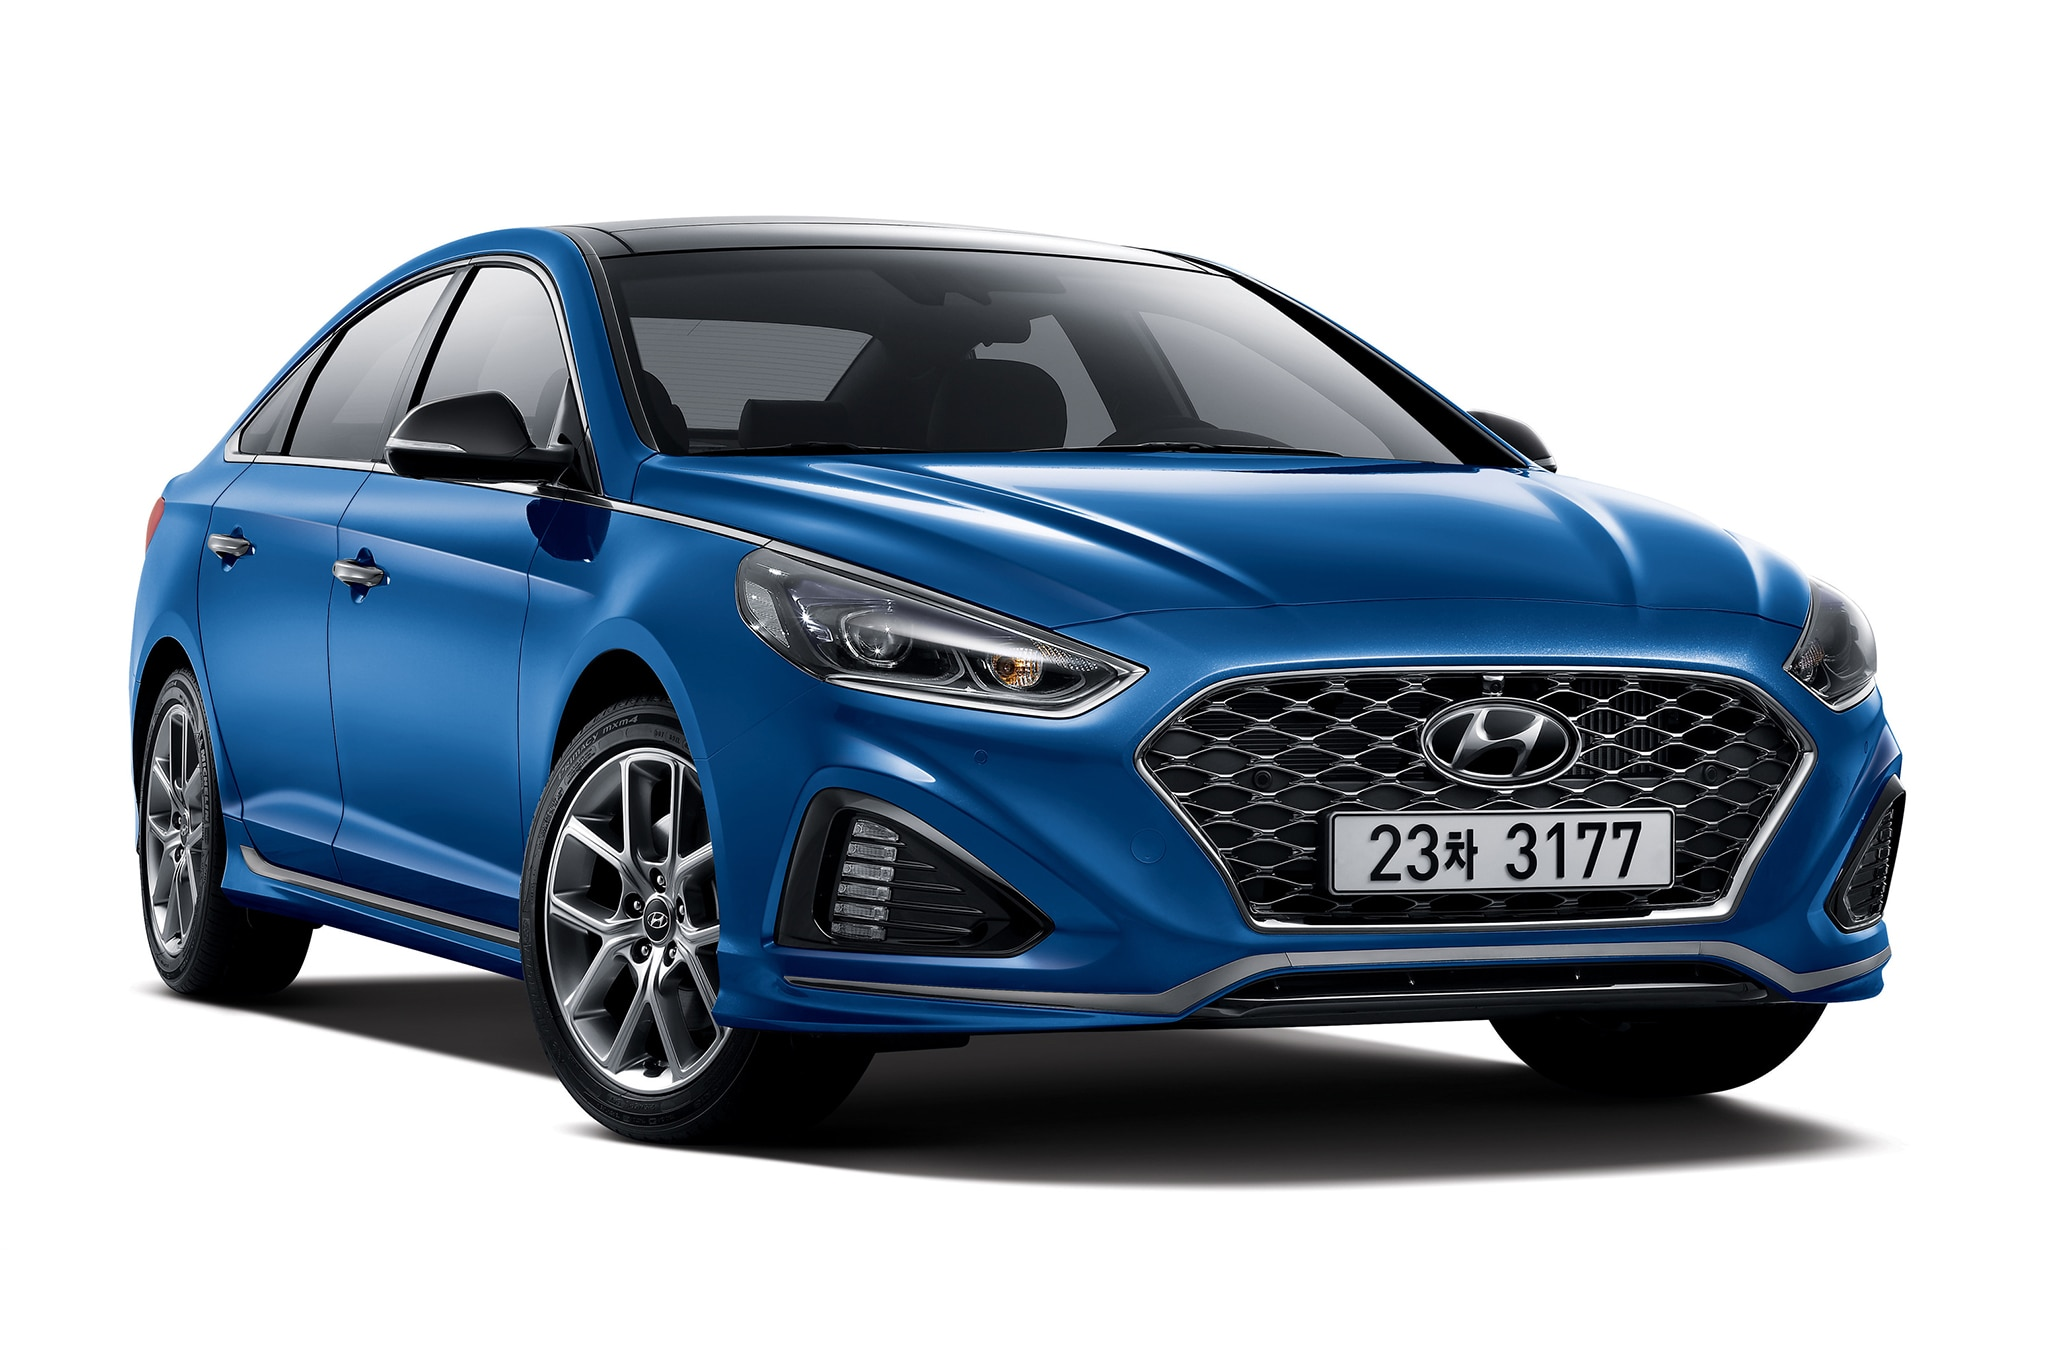 hyundai accent blue 2018. delighful 2018 11 throughout hyundai accent blue 2018